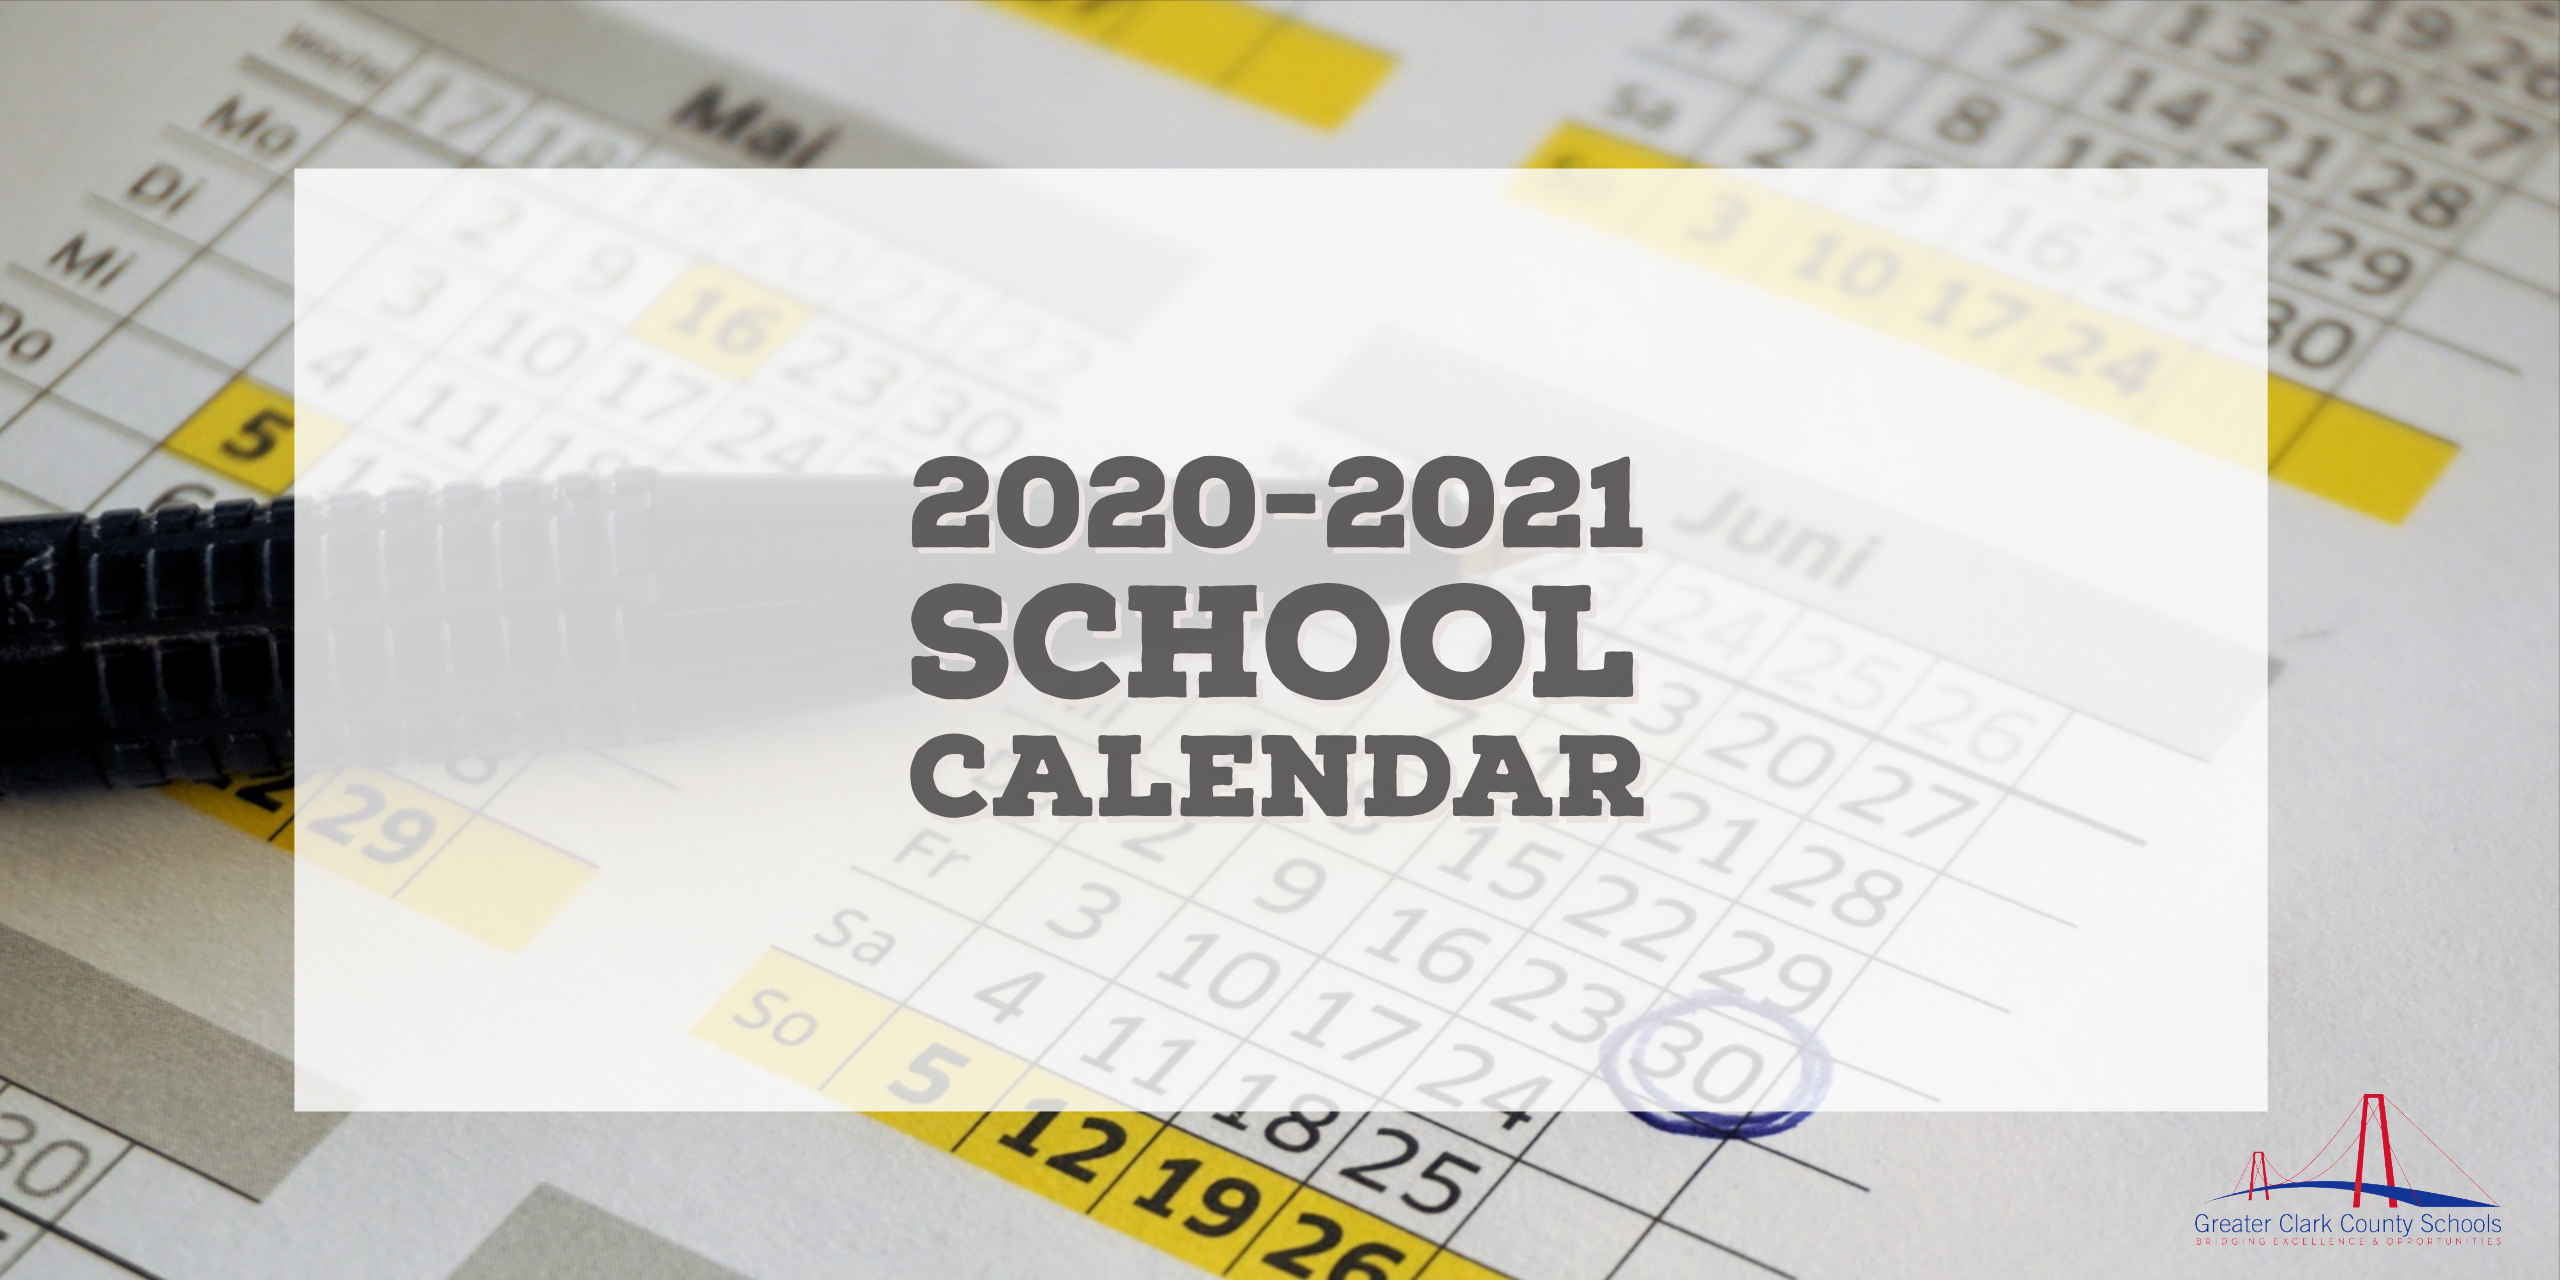 2020-2021 School Calendar – Greater Clark County Schools within West Clark Community School Calendar 2021 20